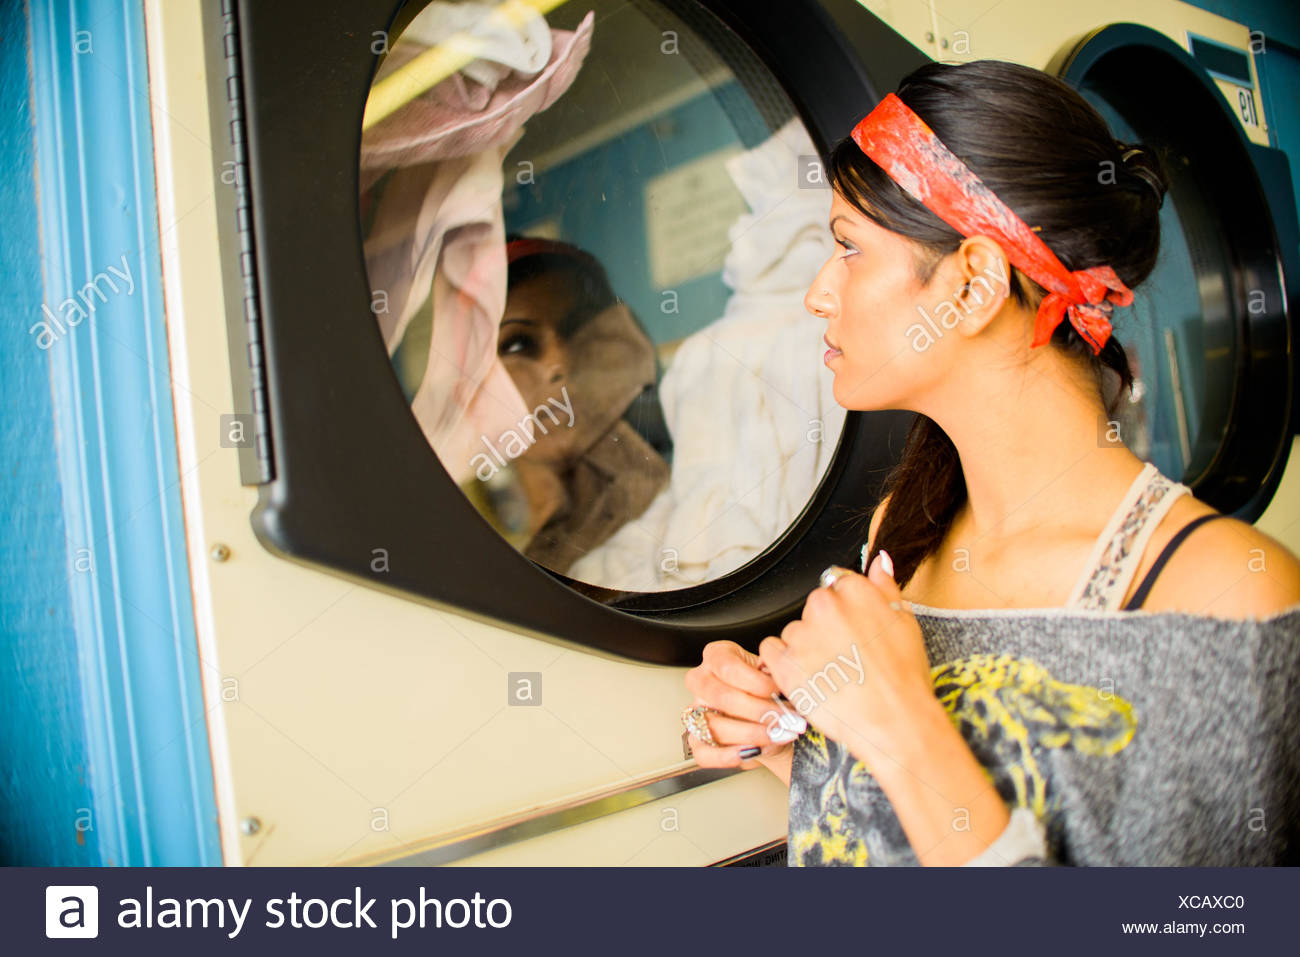 Young woman in laundromat, watching washing in machine - Stock Image